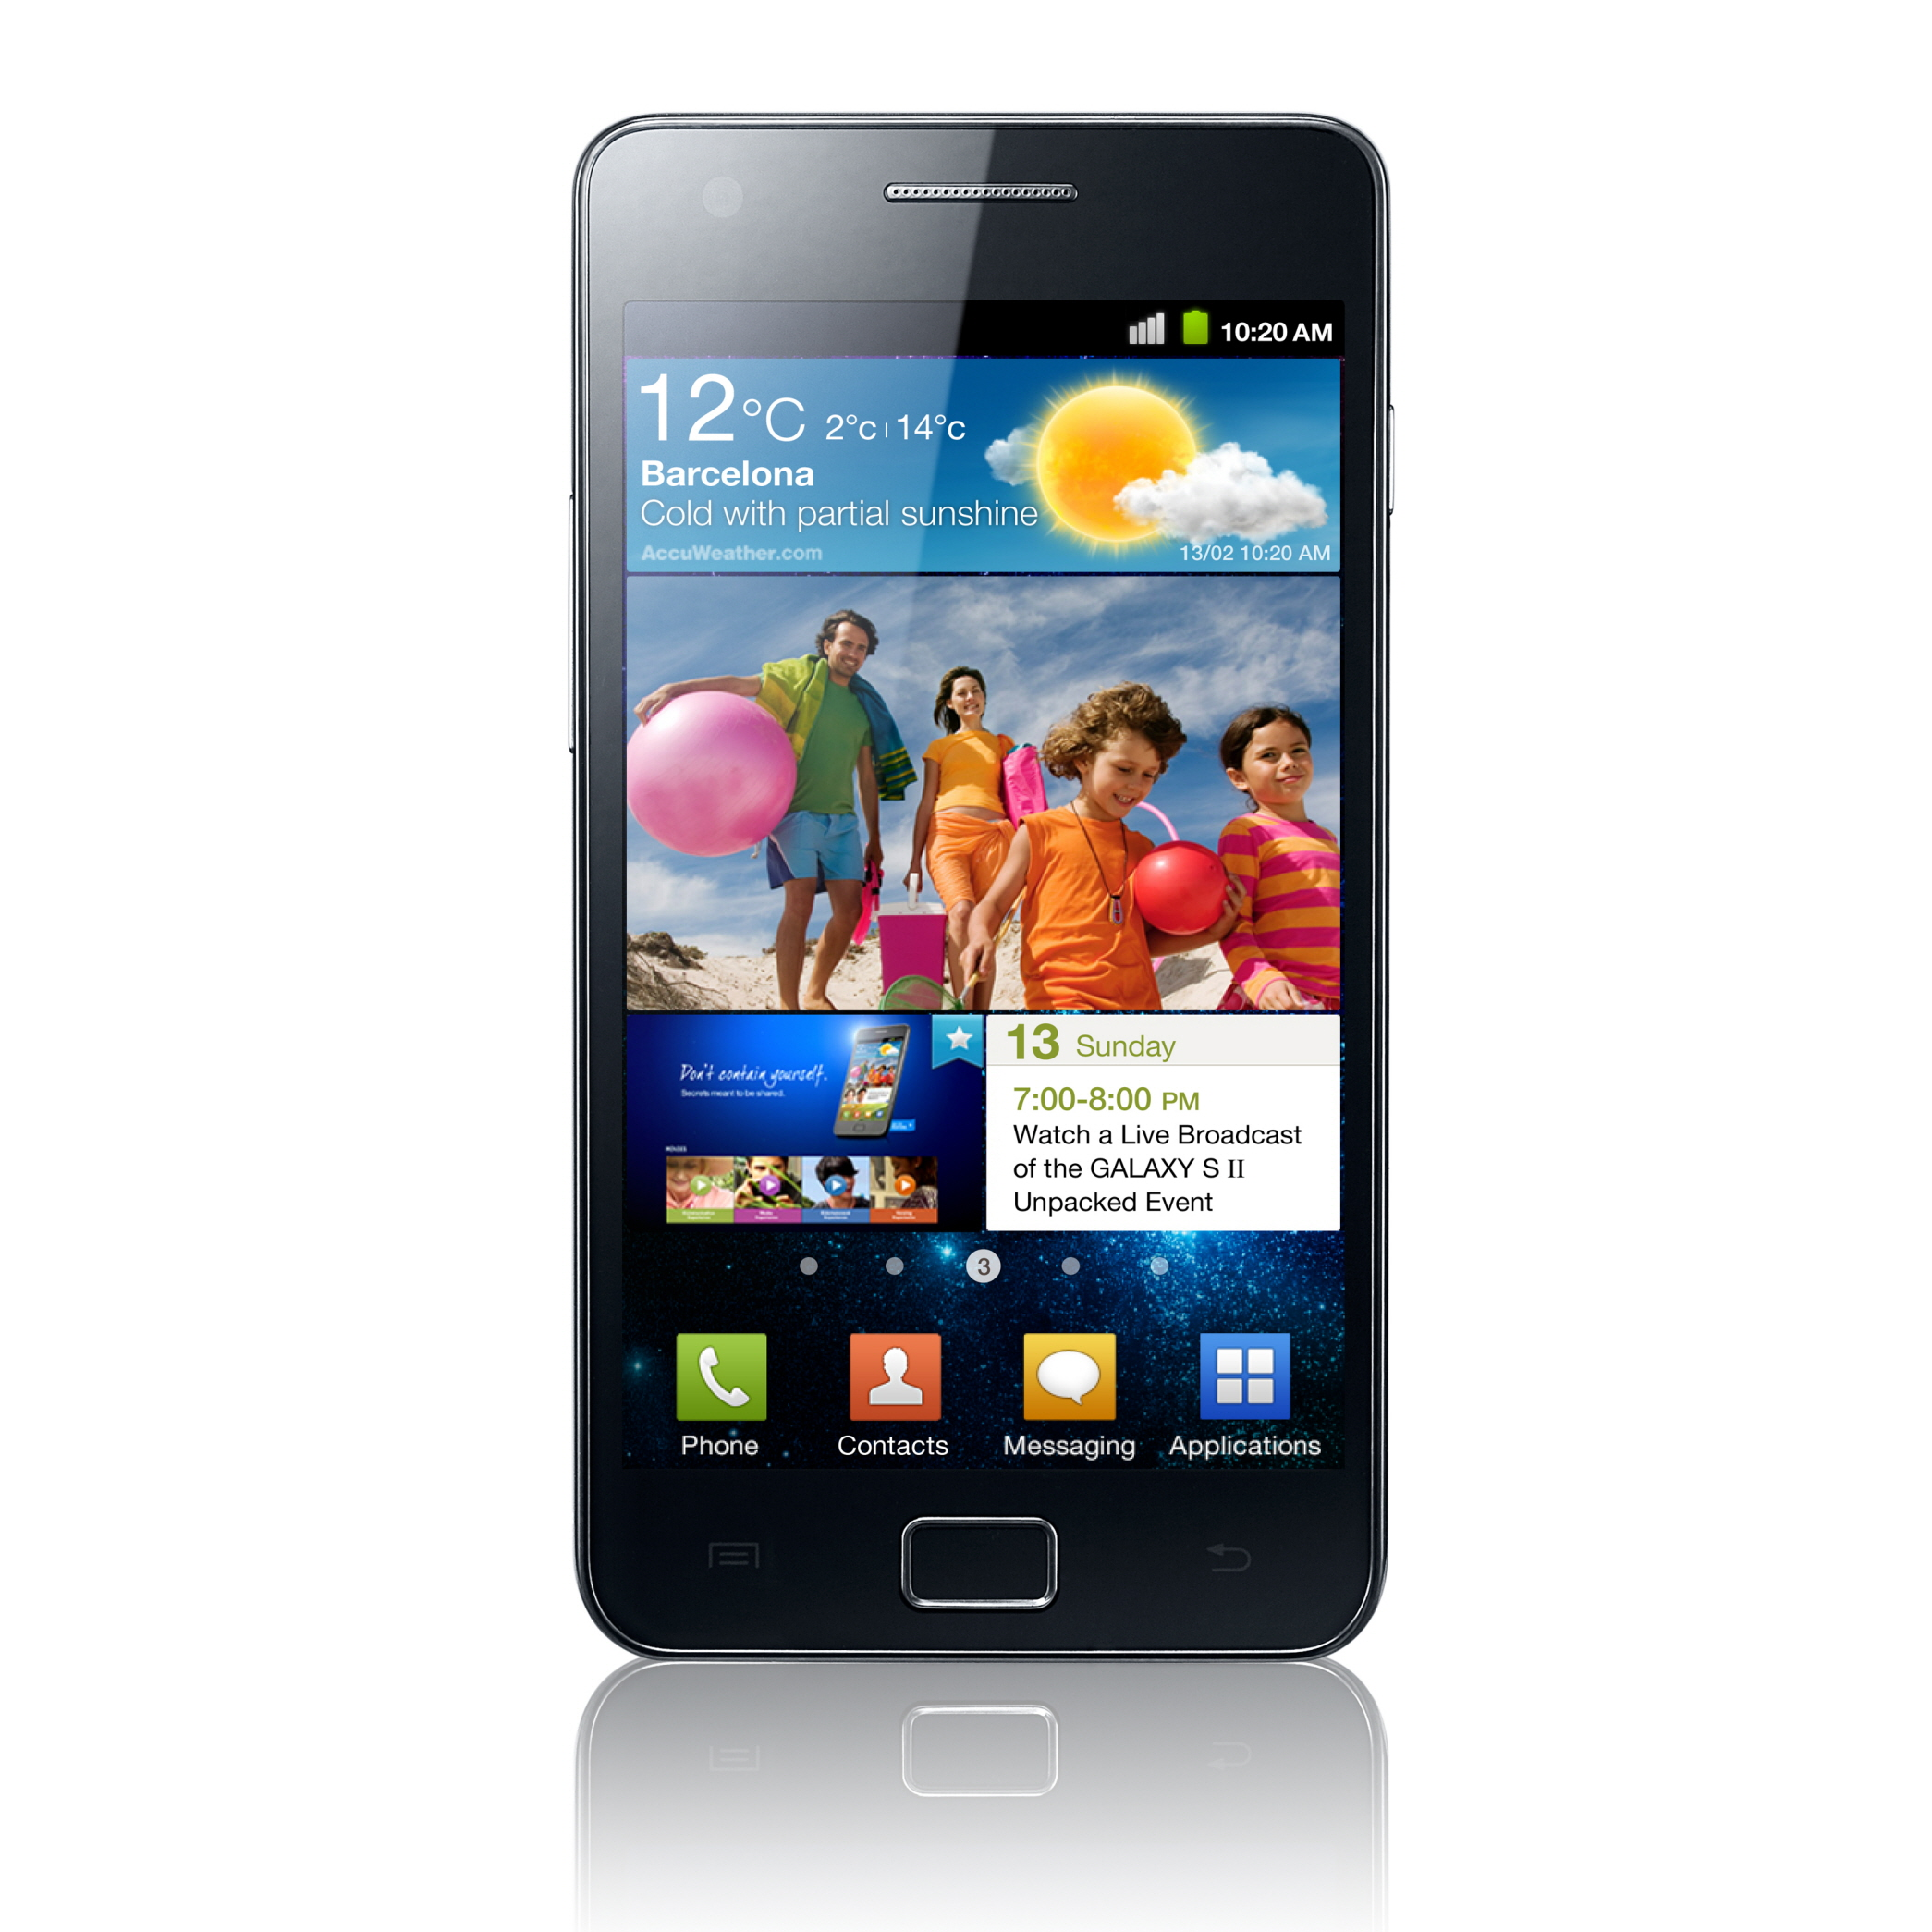 Samsung Galaxy S 2 Epic 4G Sprint